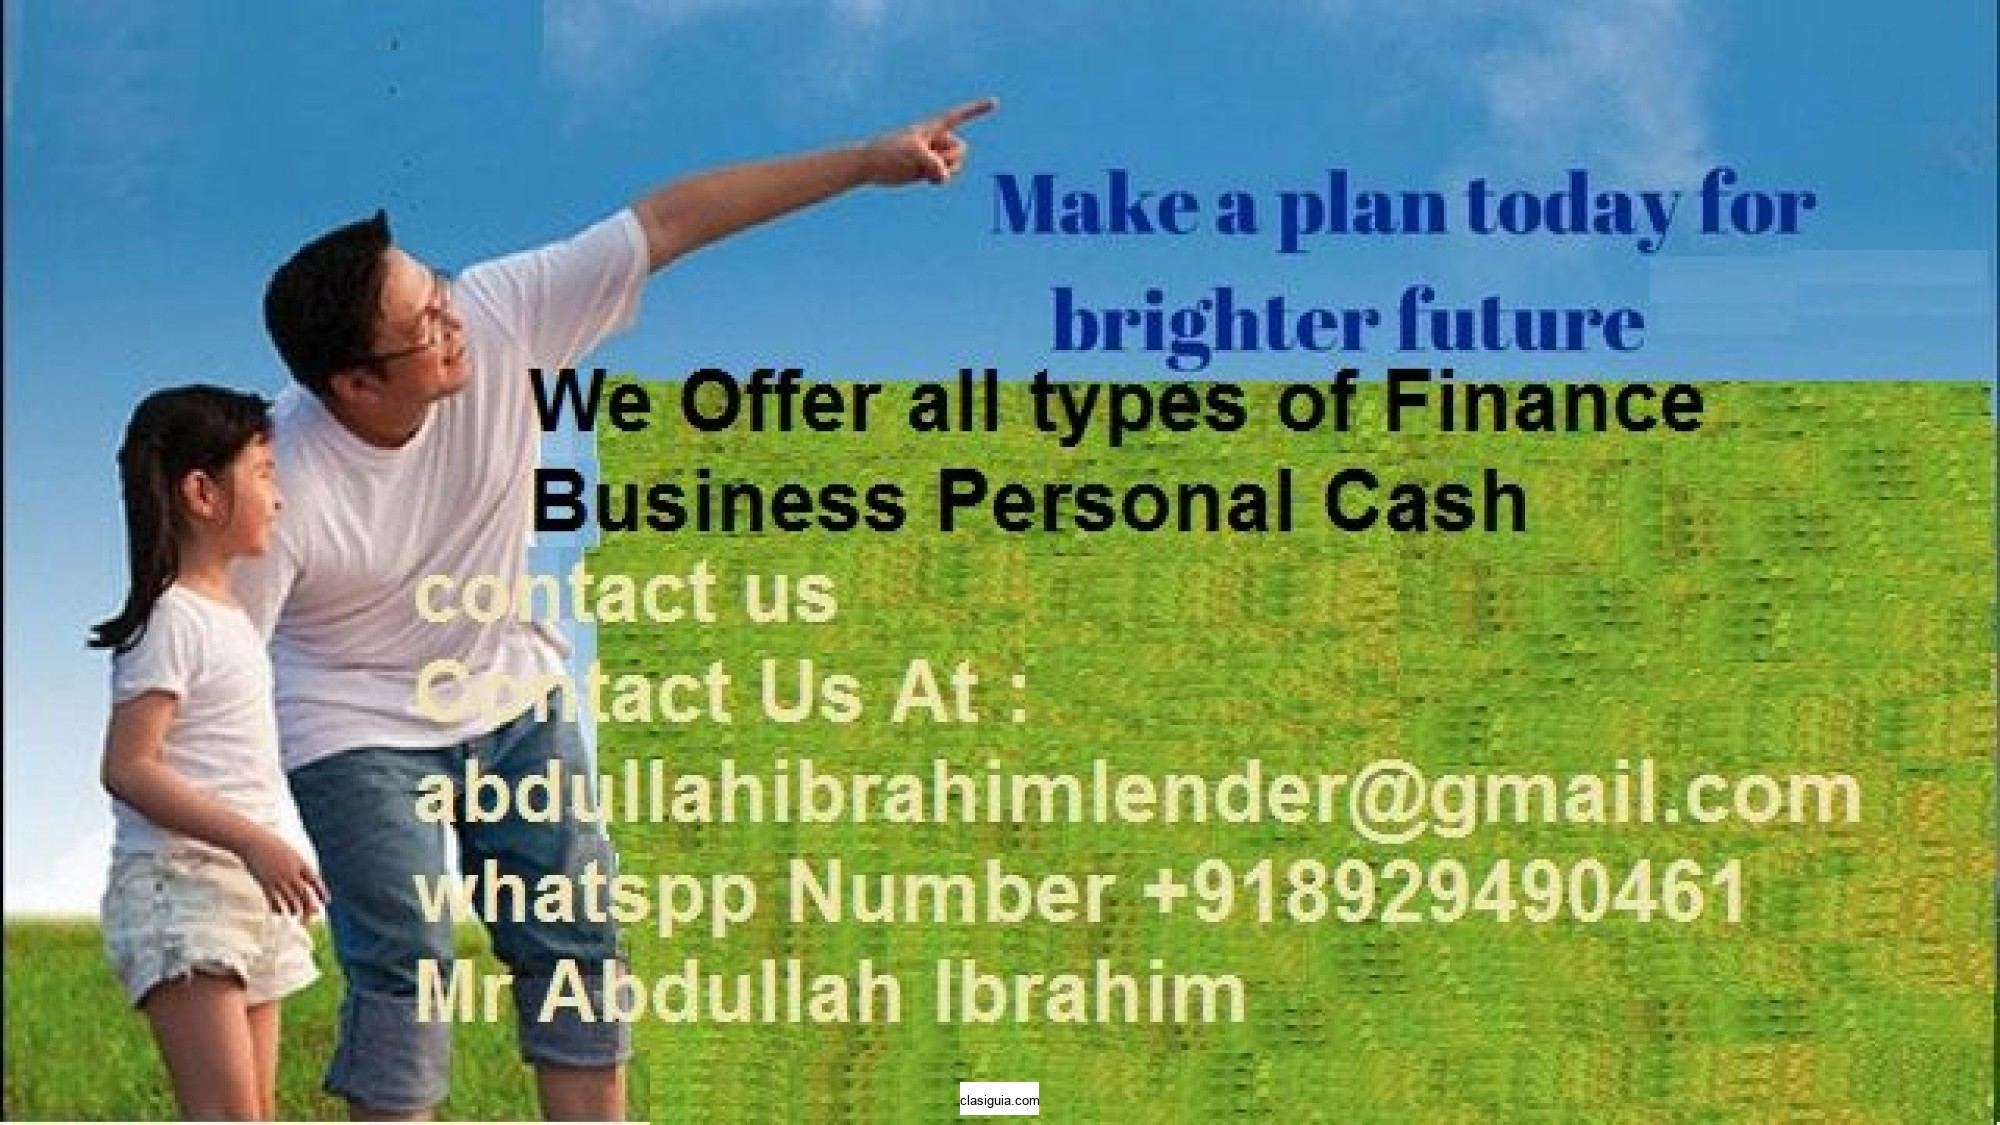 Do you need financial cash from $3,000